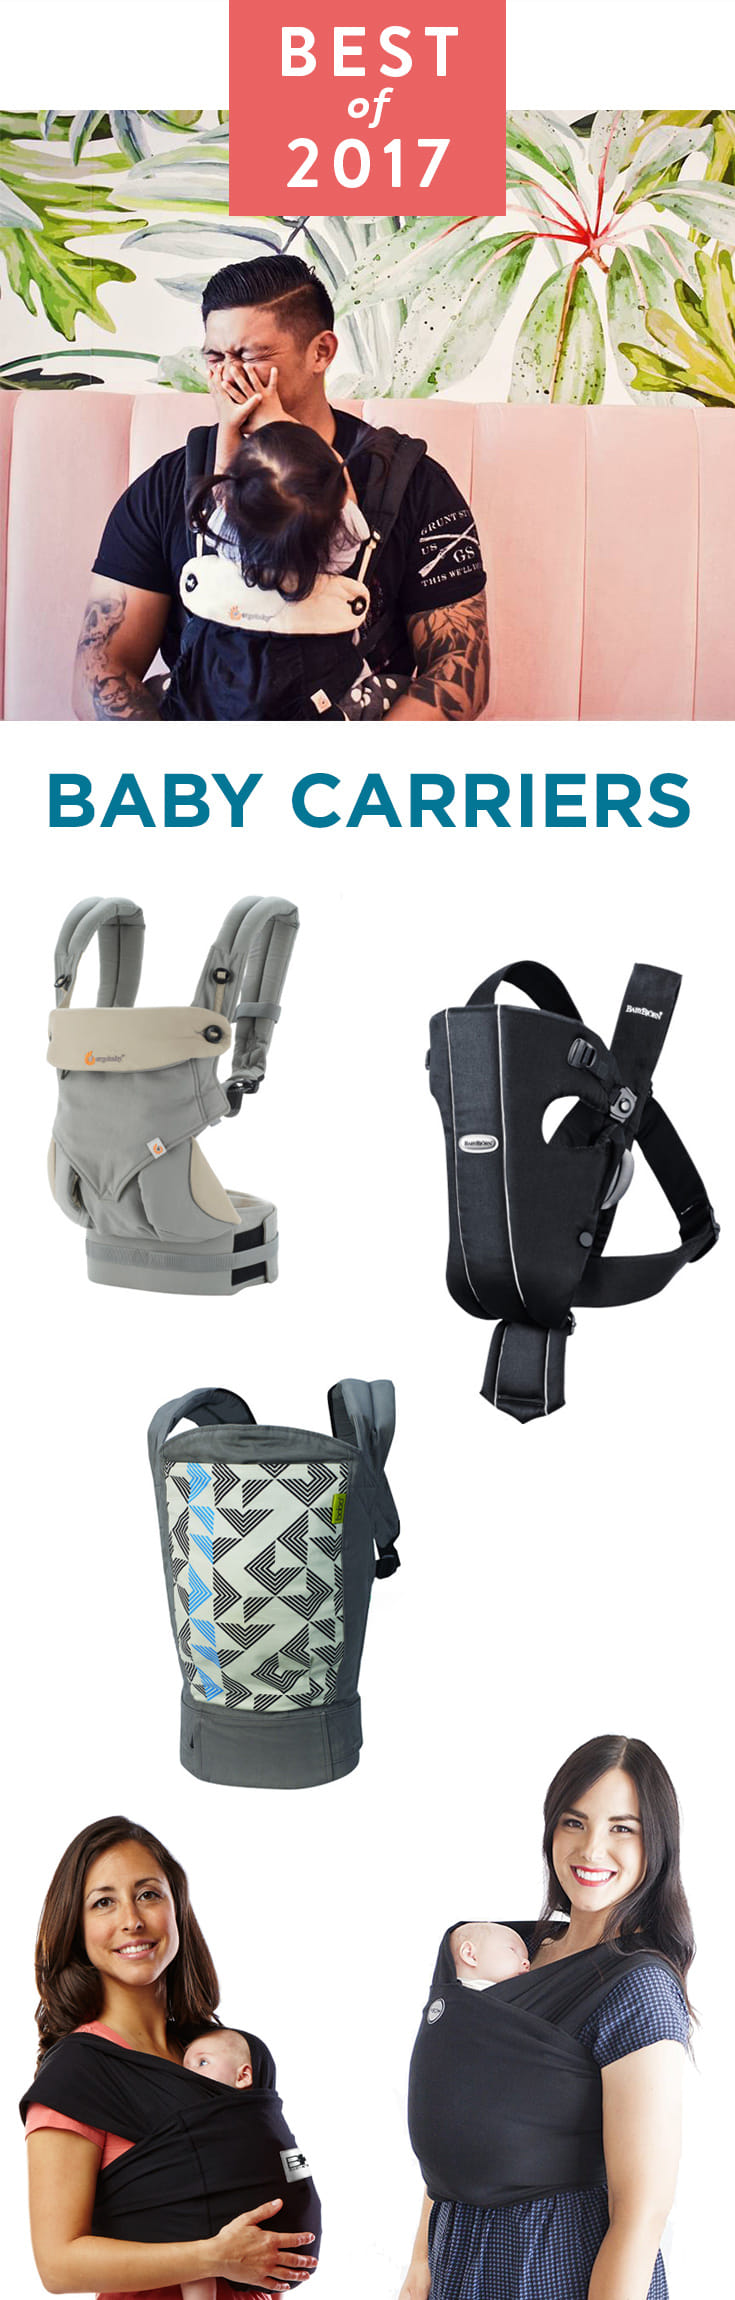 This is by far the baby product parents say they love the most.